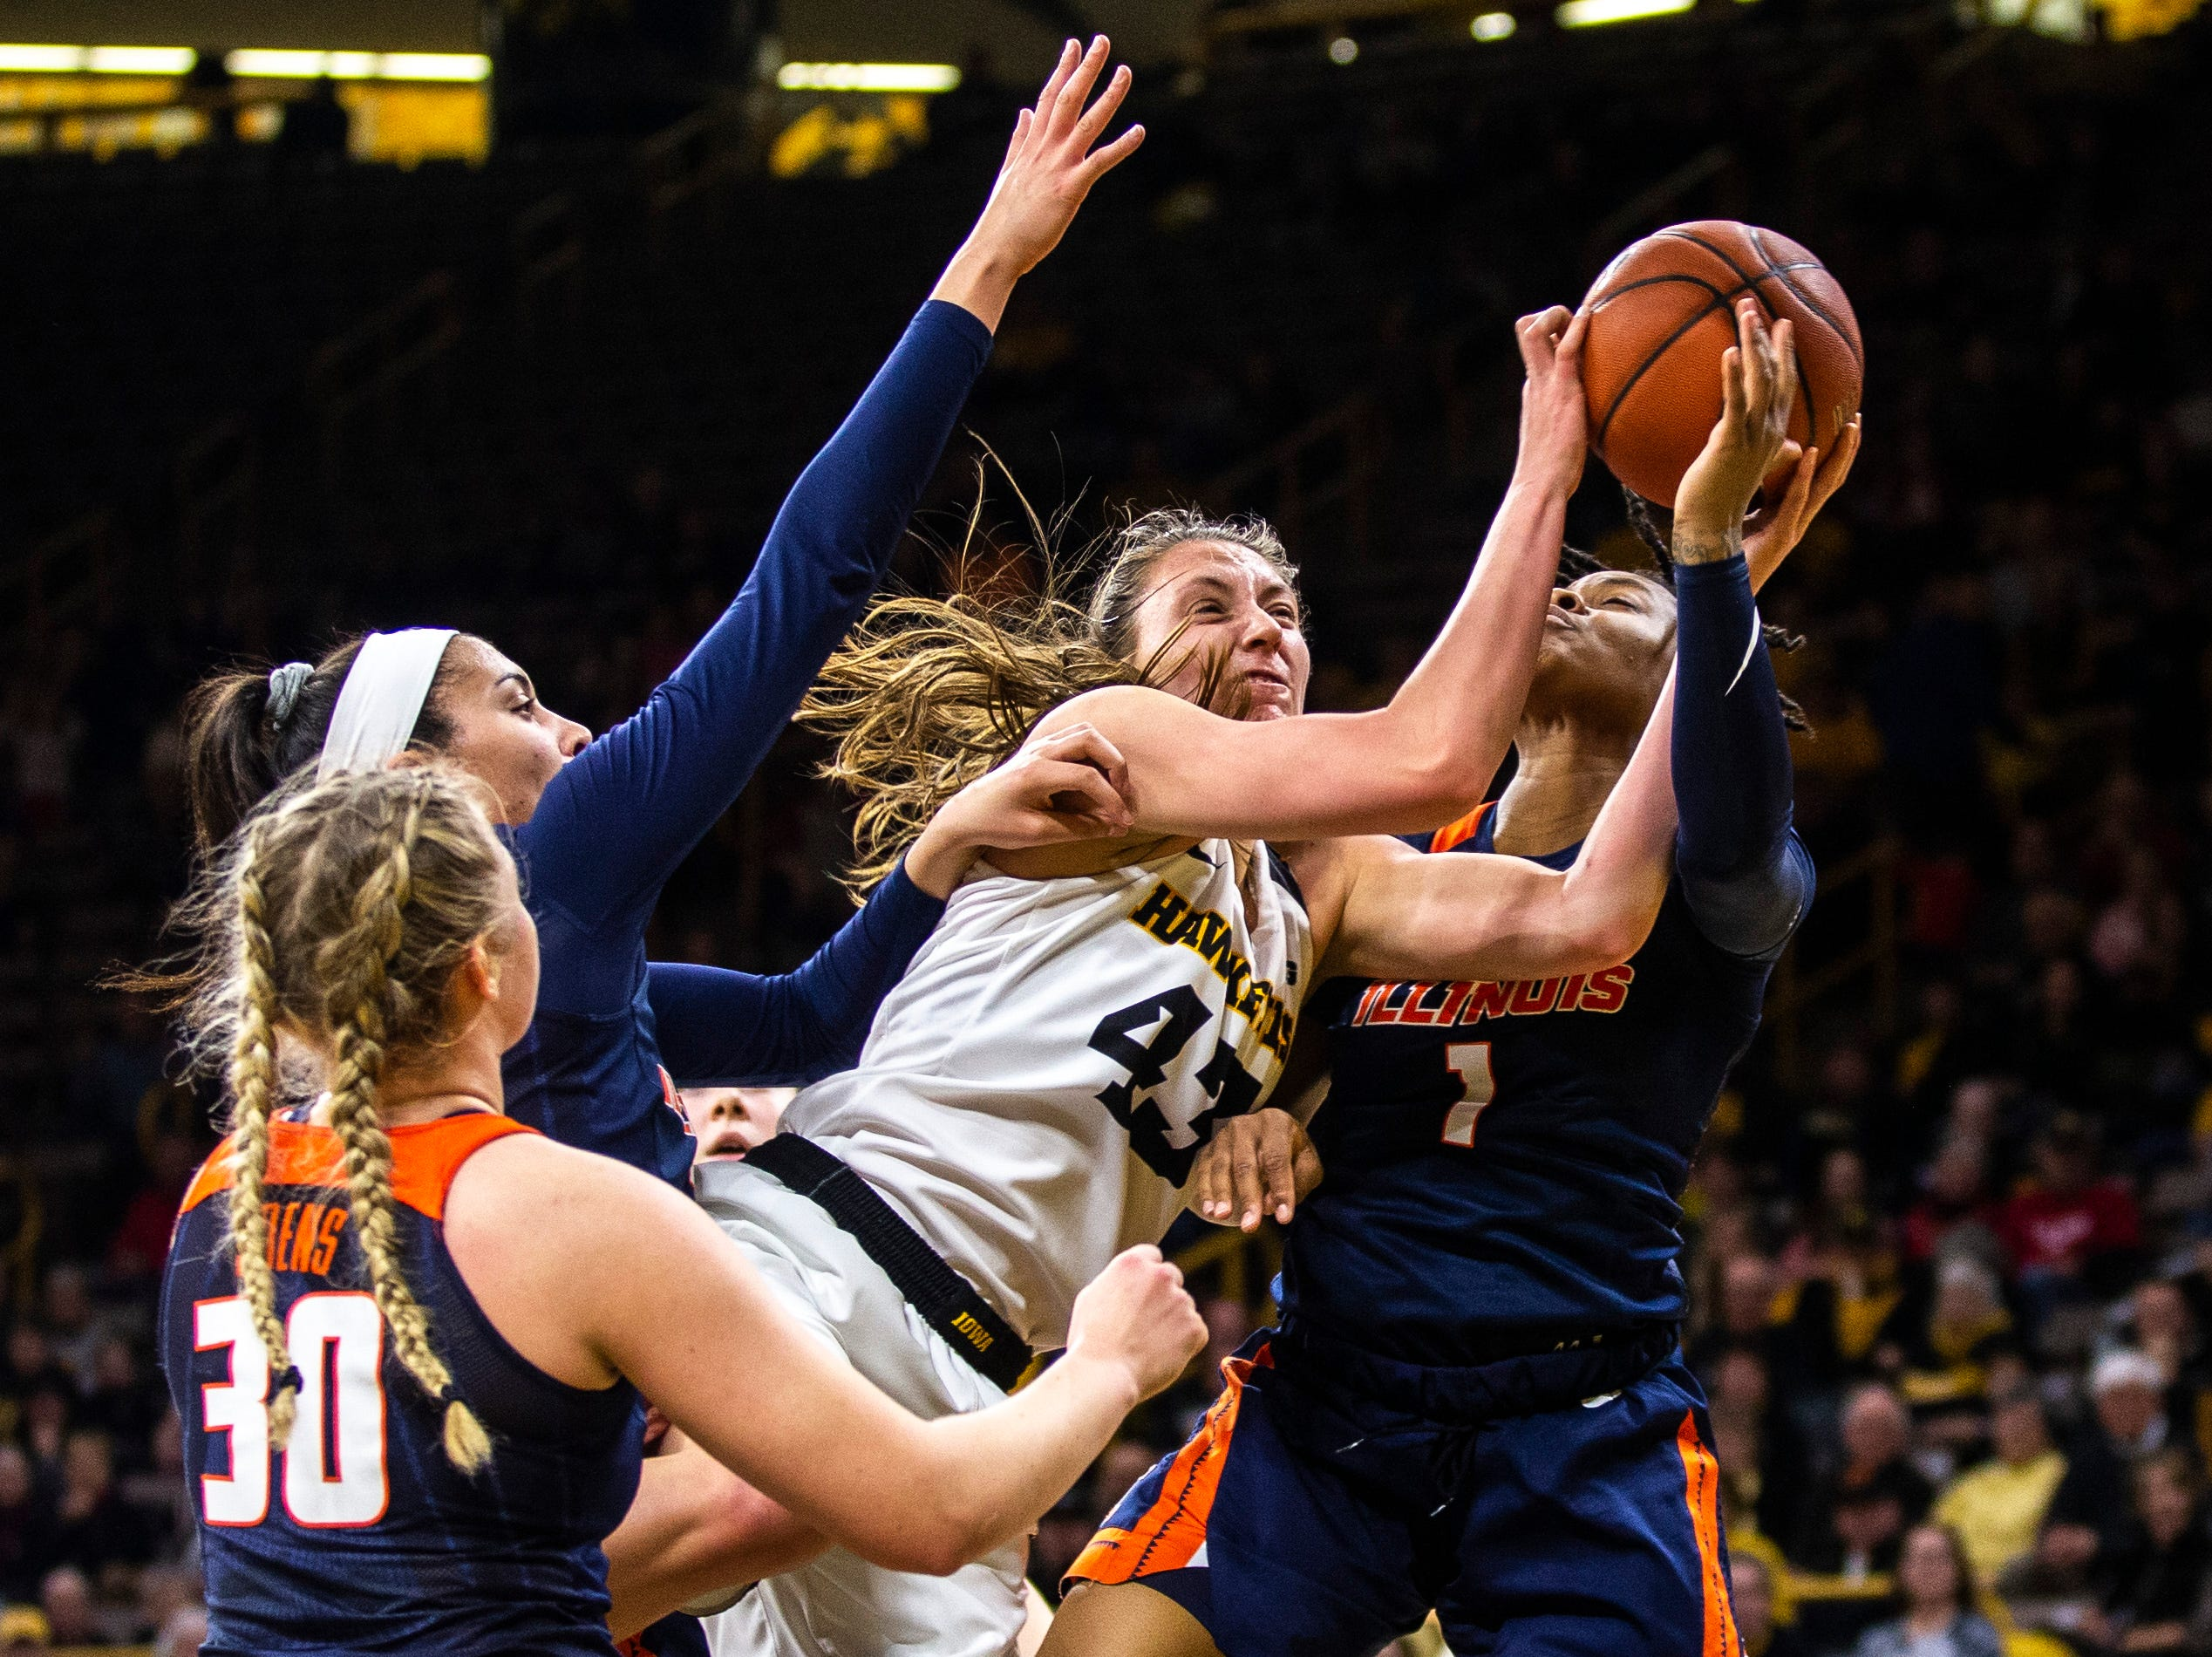 Iowa forward Amanda Ollinger (43) gets tangled up with Illinois' Sarah Shewan, left, and Brandi Beasley (1) while  Courtney Joens (30) defends during a NCAA Big Ten Conference women's basketball game on Thursday, Feb. 14, 2019 at Carver-Hawkeye Arena in Iowa City, Iowa.